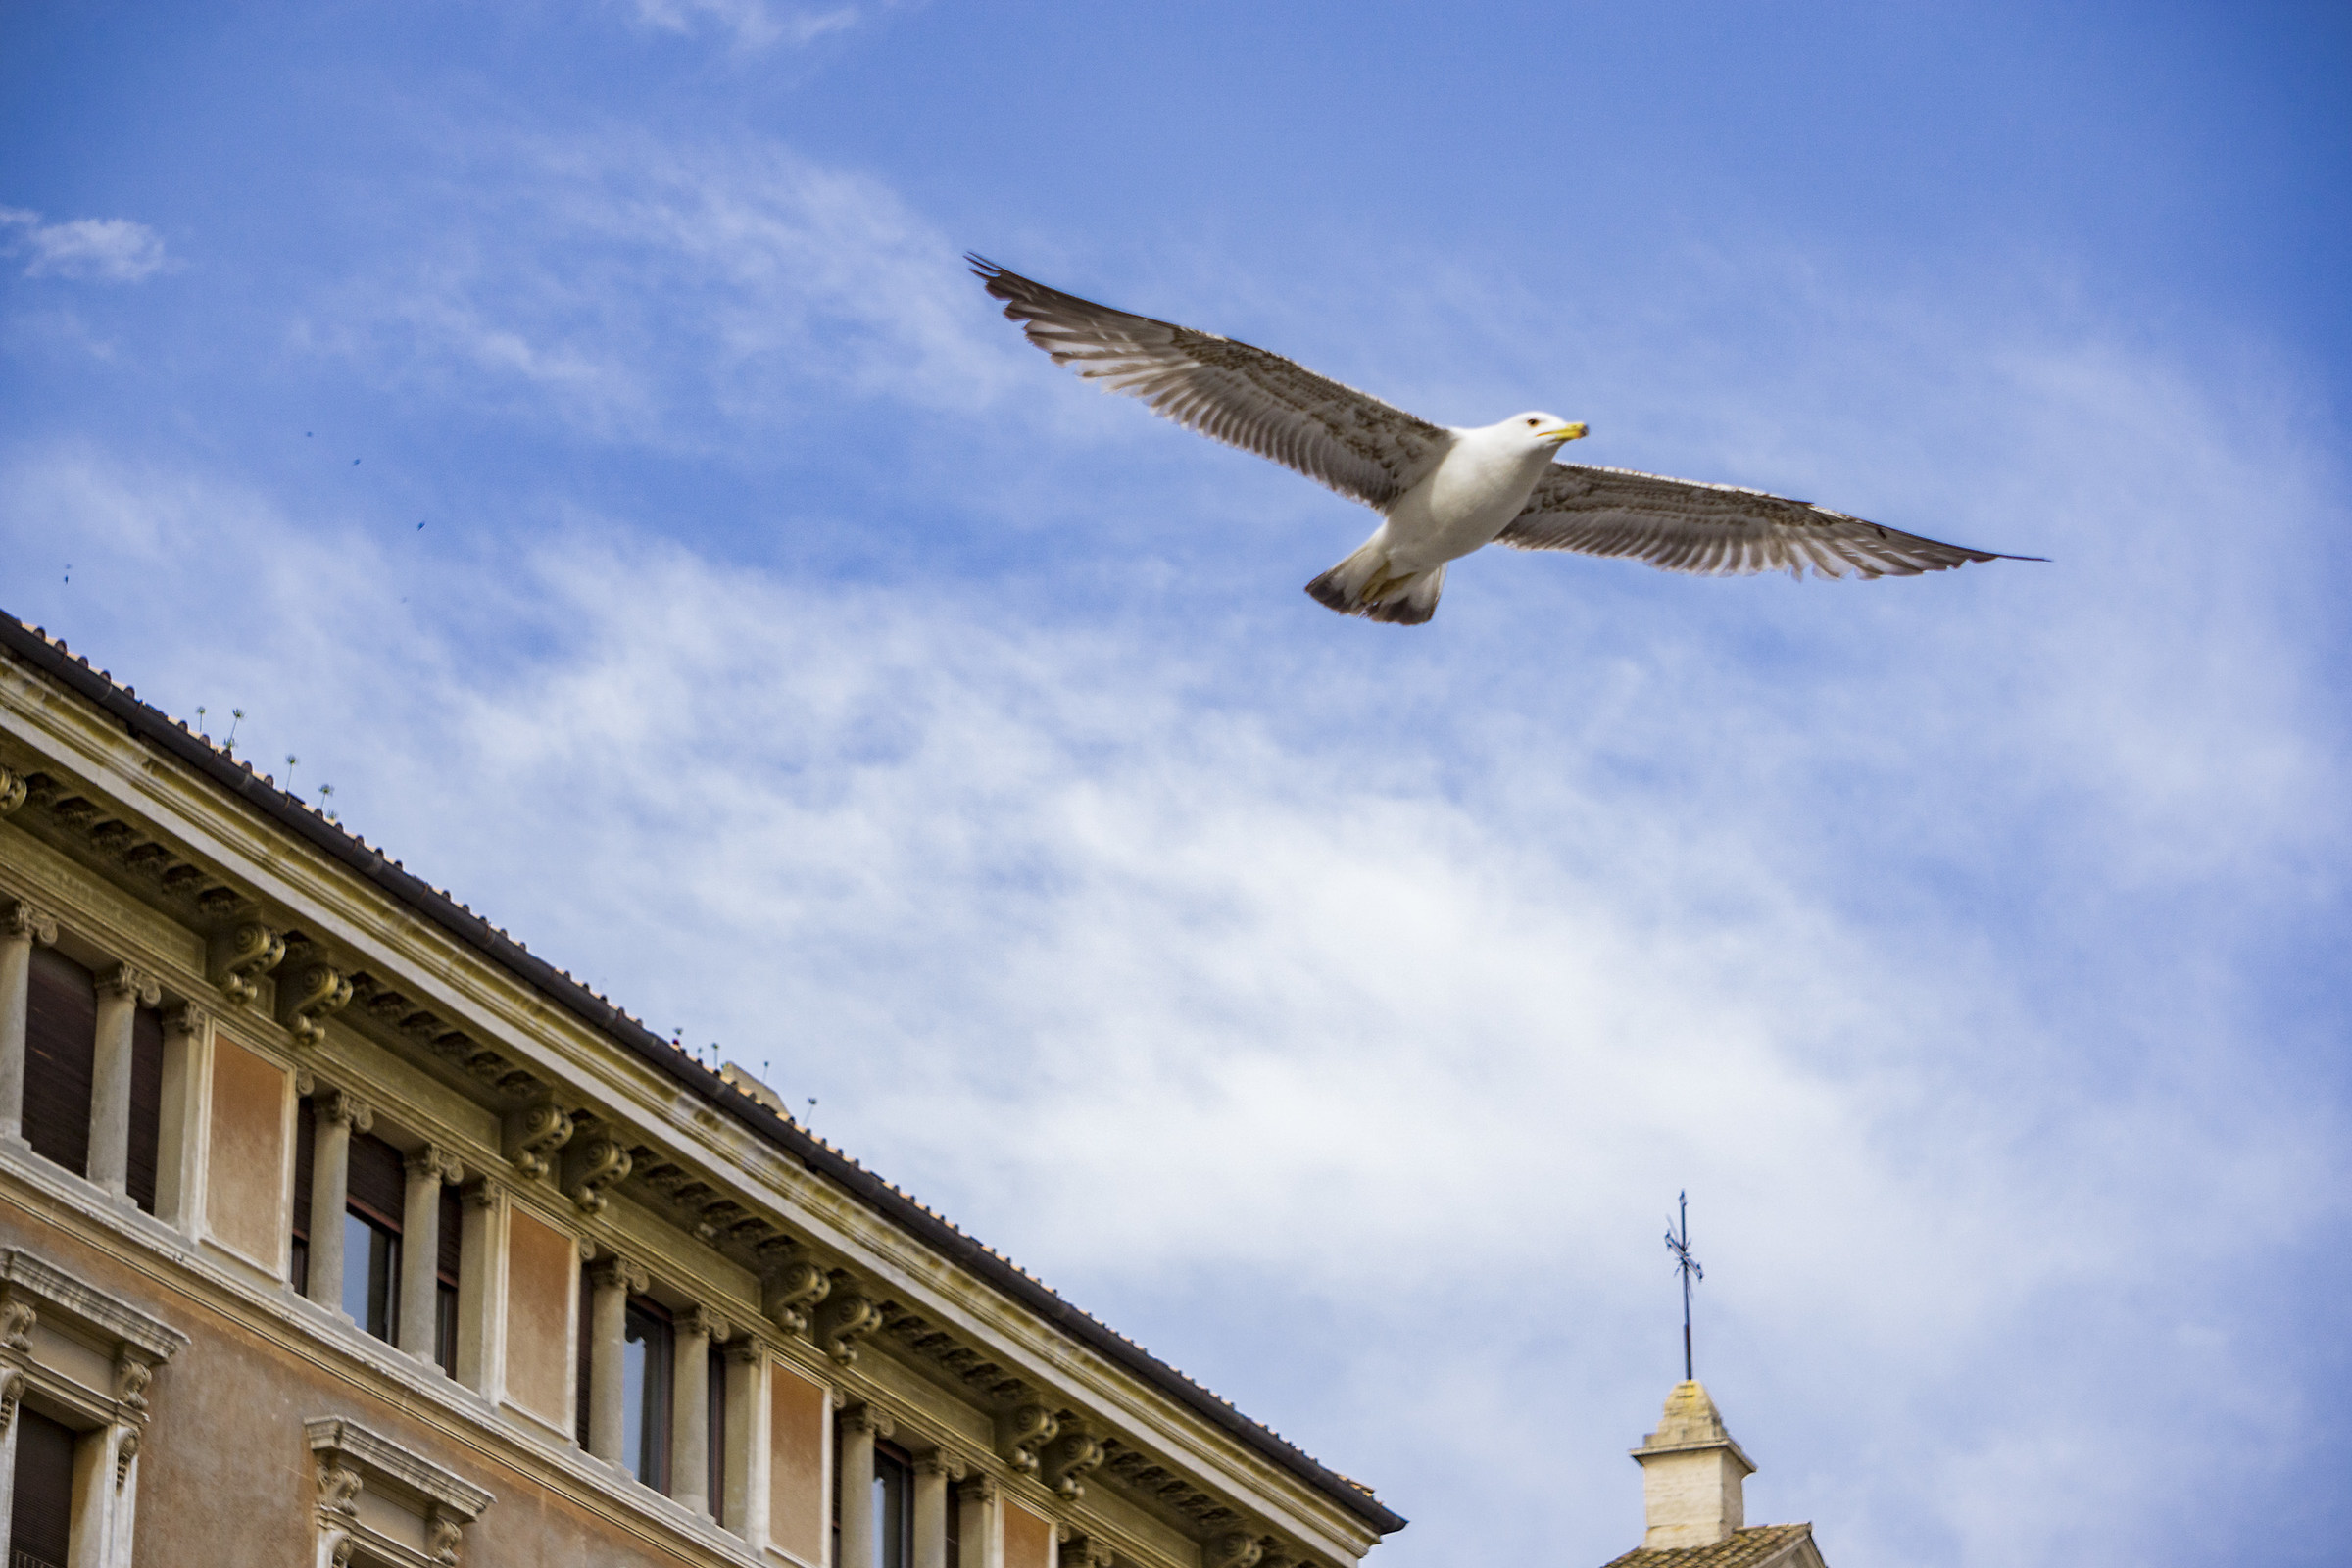 The Papal Seagull...